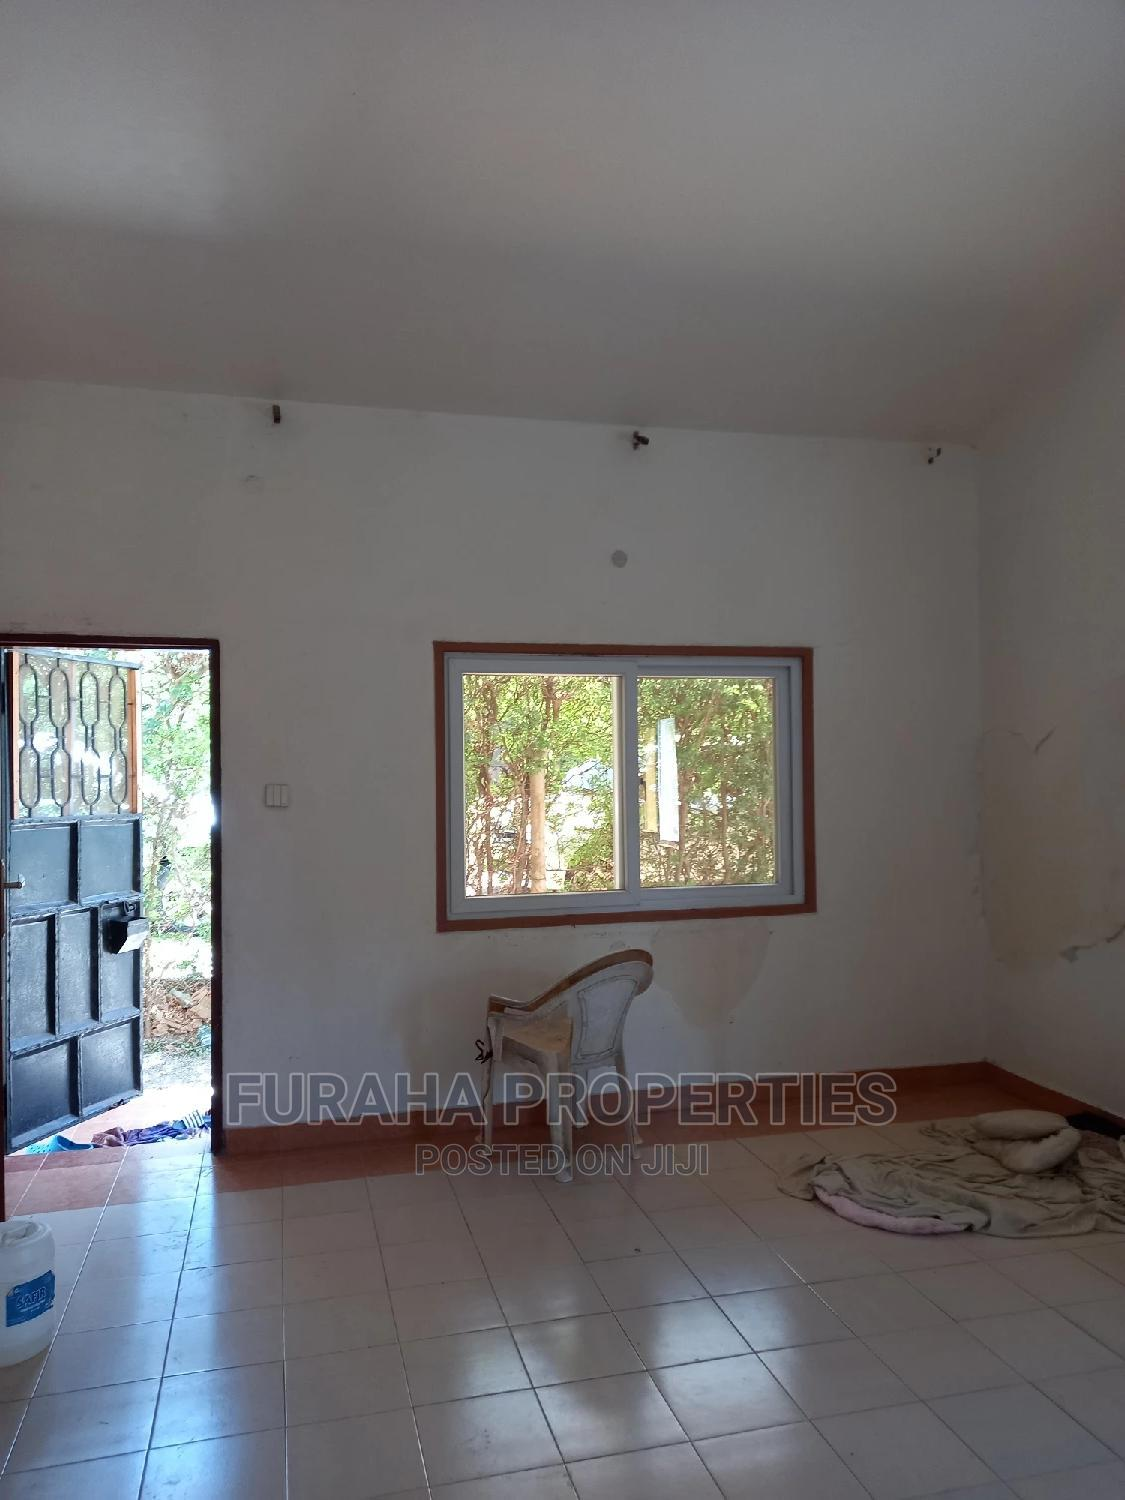 Archive: For Sale 3 Bedrooms Bungalow Bamburi